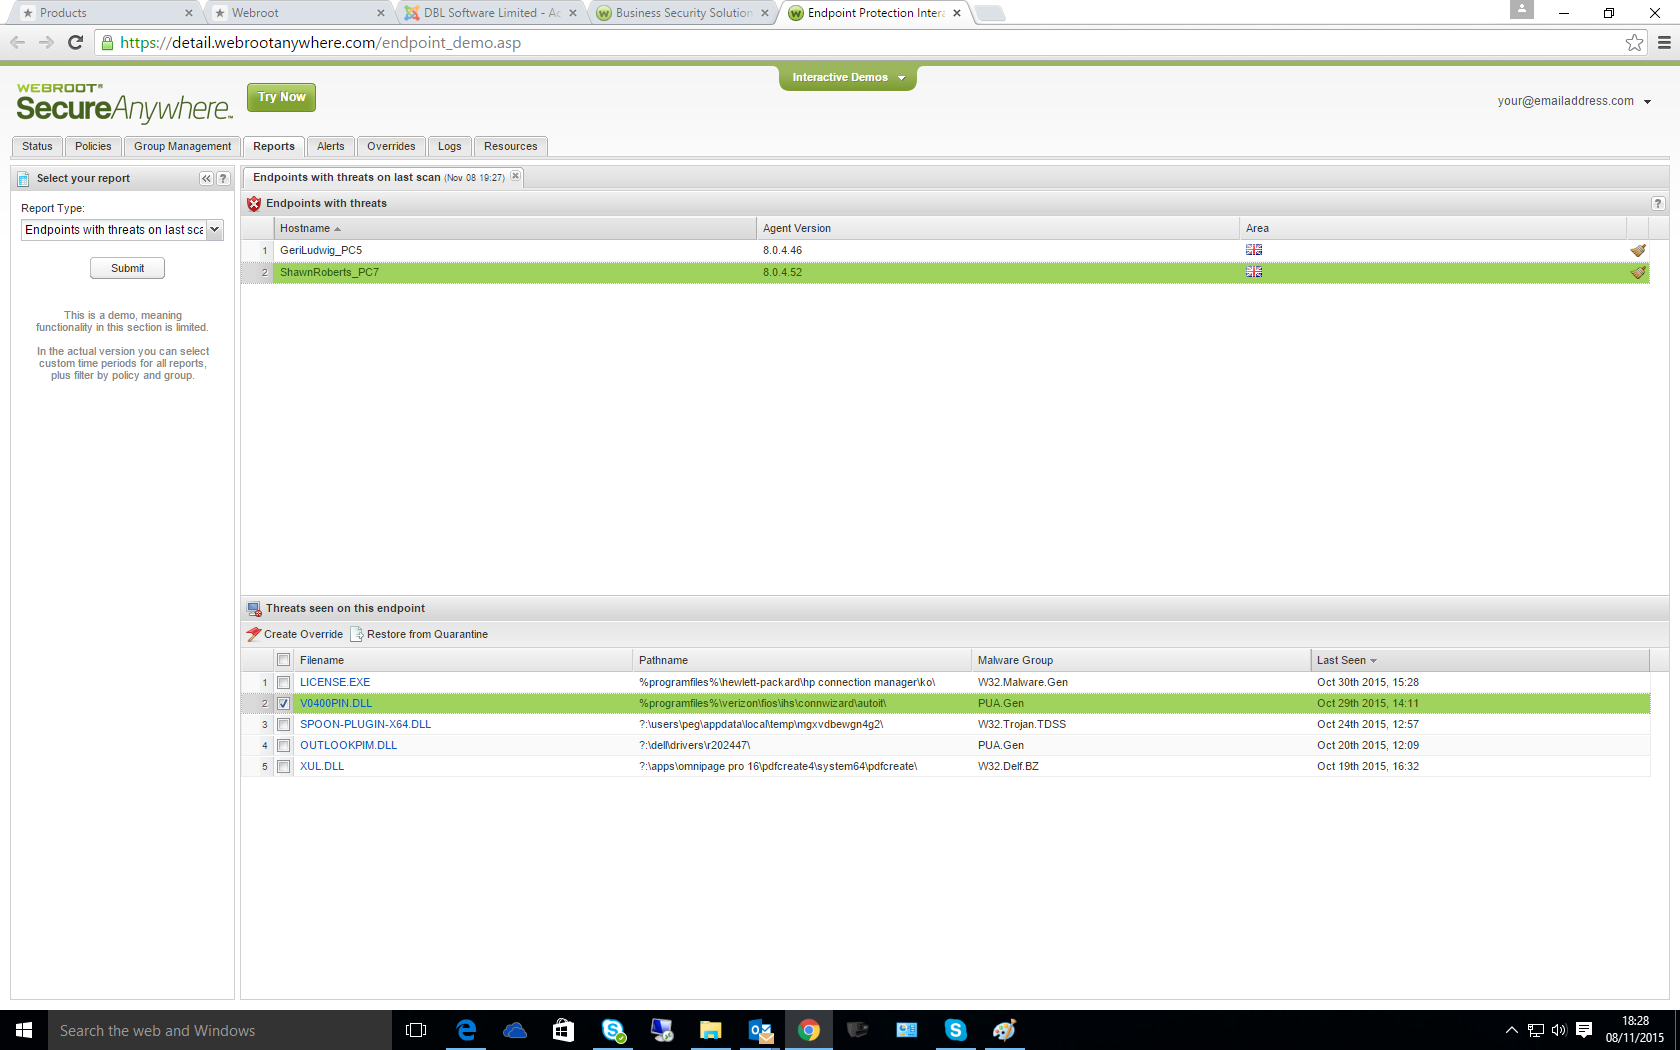 Webroot Secure Anywhere - Lightest and fastest AV - DBL Software